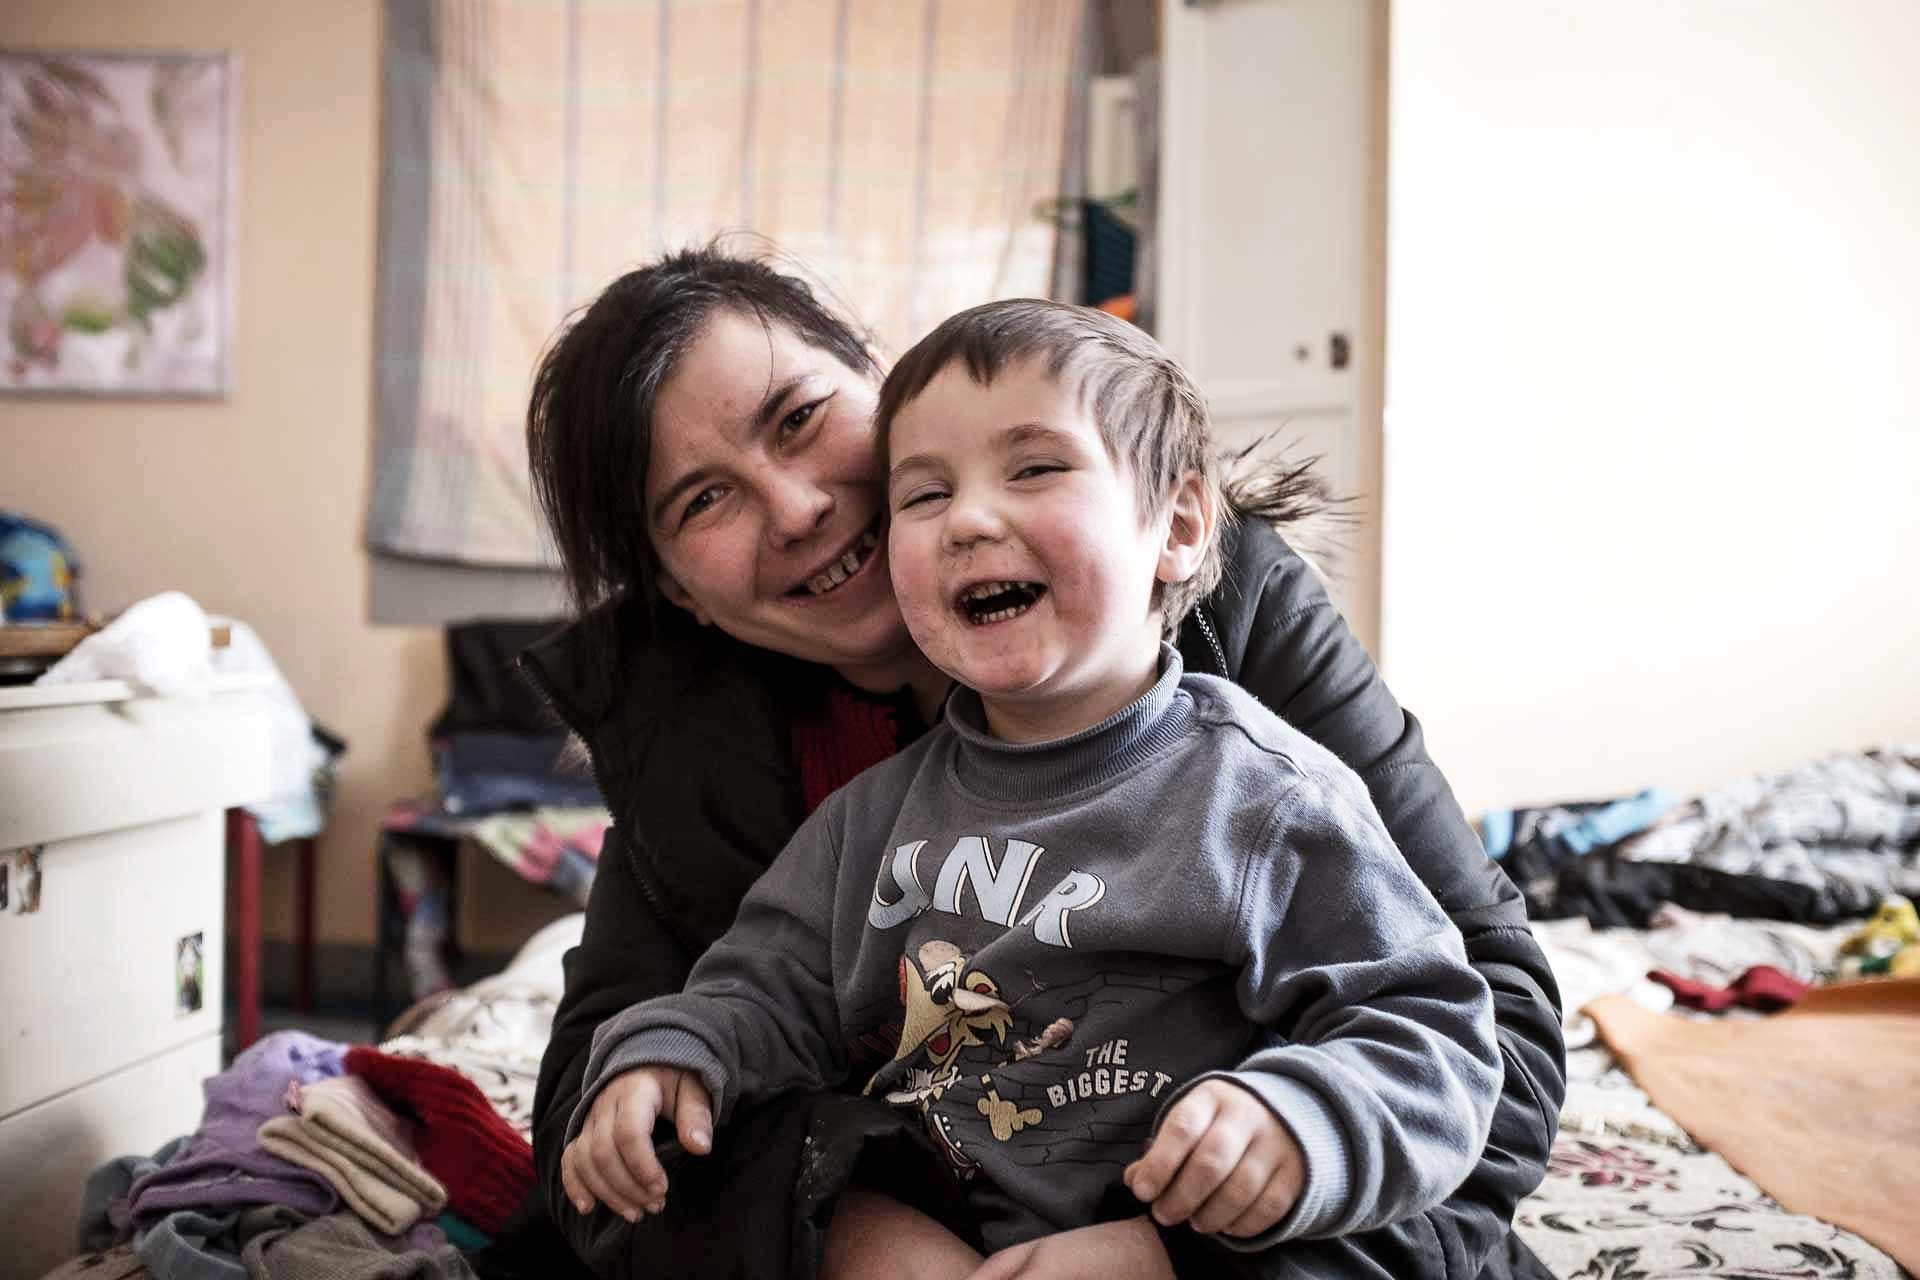 Sveta, 27, from Yenakievo, has 3 children. Vlad is one of them. They live with some other 20 people in the same room. Kramatorsk - UKRAINE